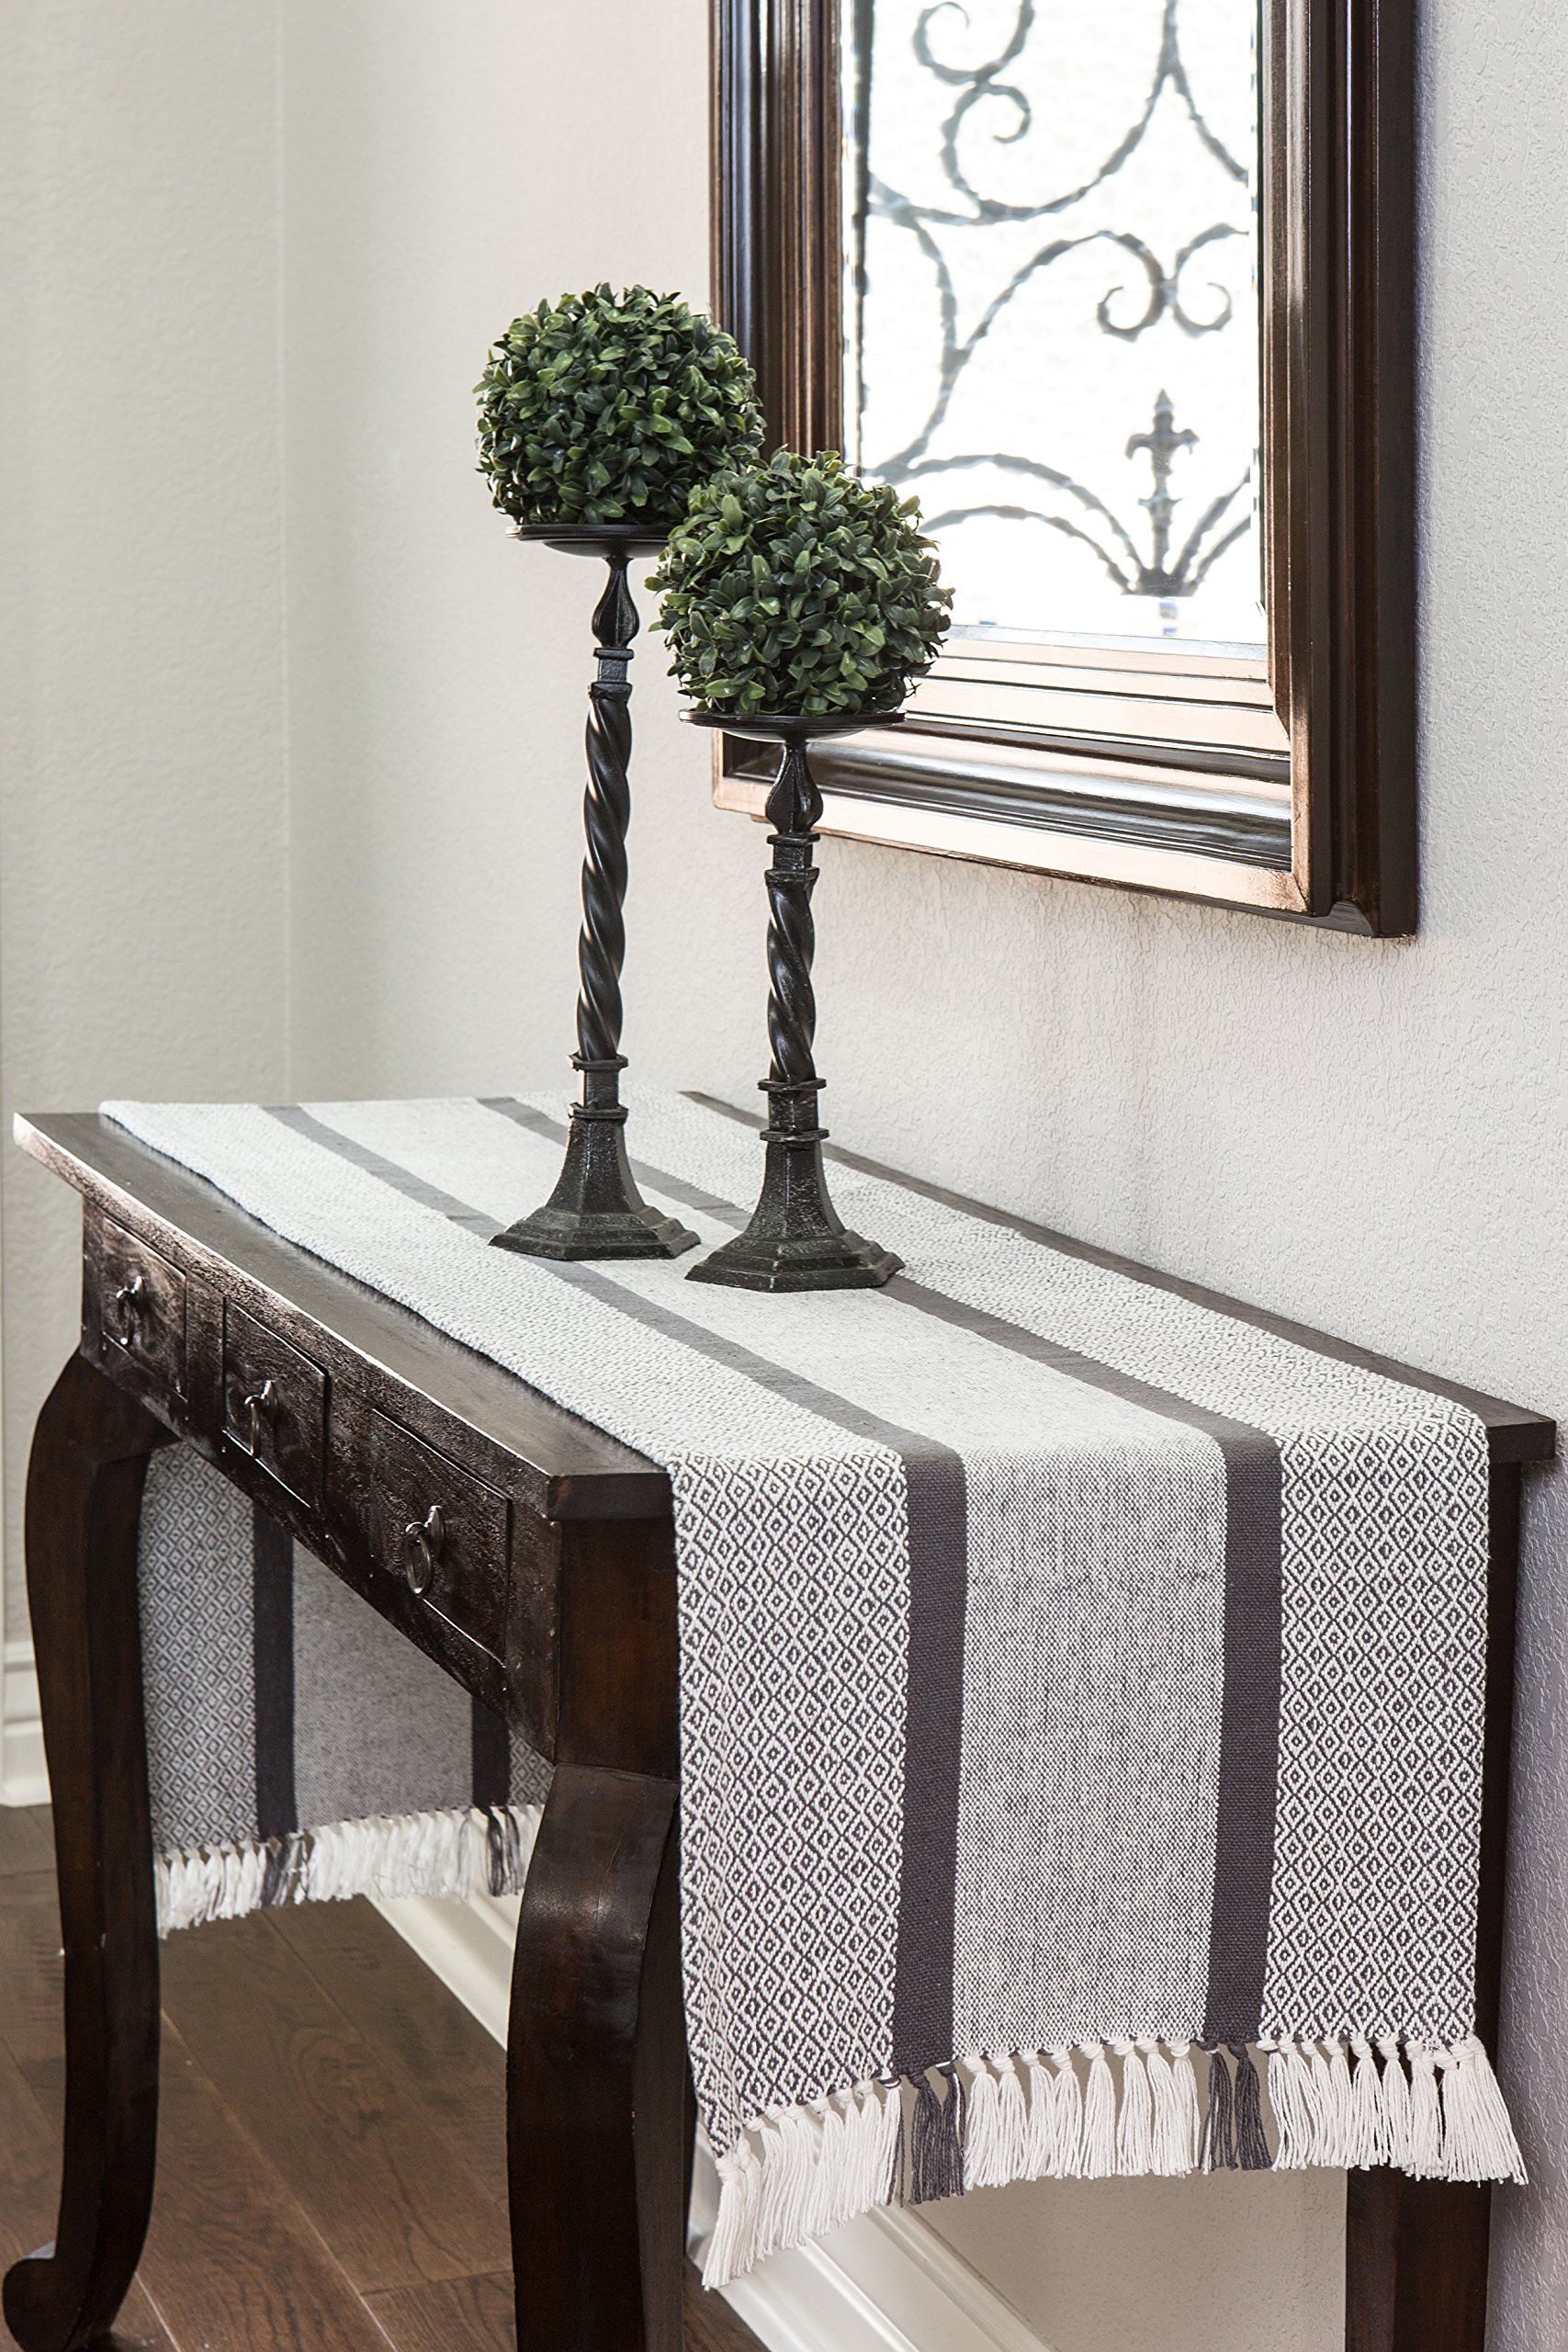 Sticky Toffee Cotton Woven Table Runner with Fringe, Traditional Diamond, Gray, 14 in x 72 in by Sticky Toffee (Image #3)